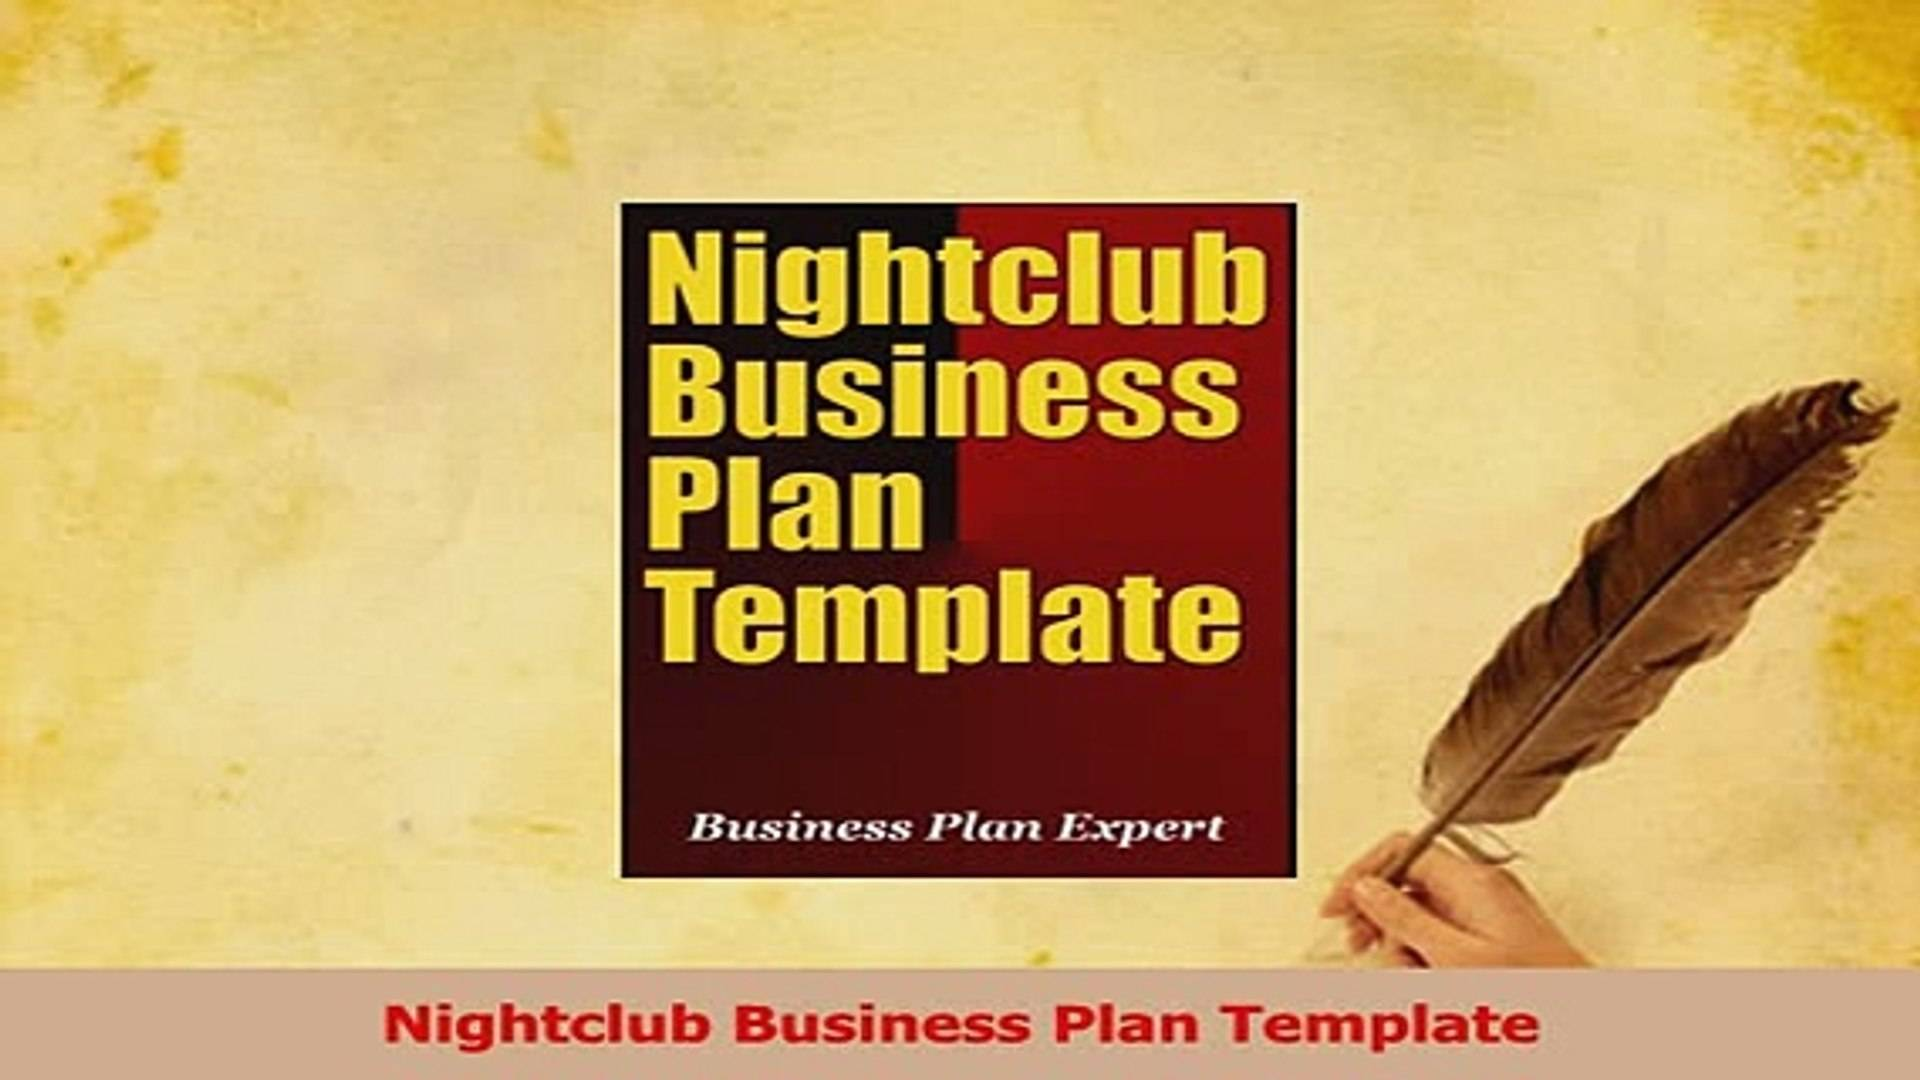 Nightclub Business Plan Template Pdf